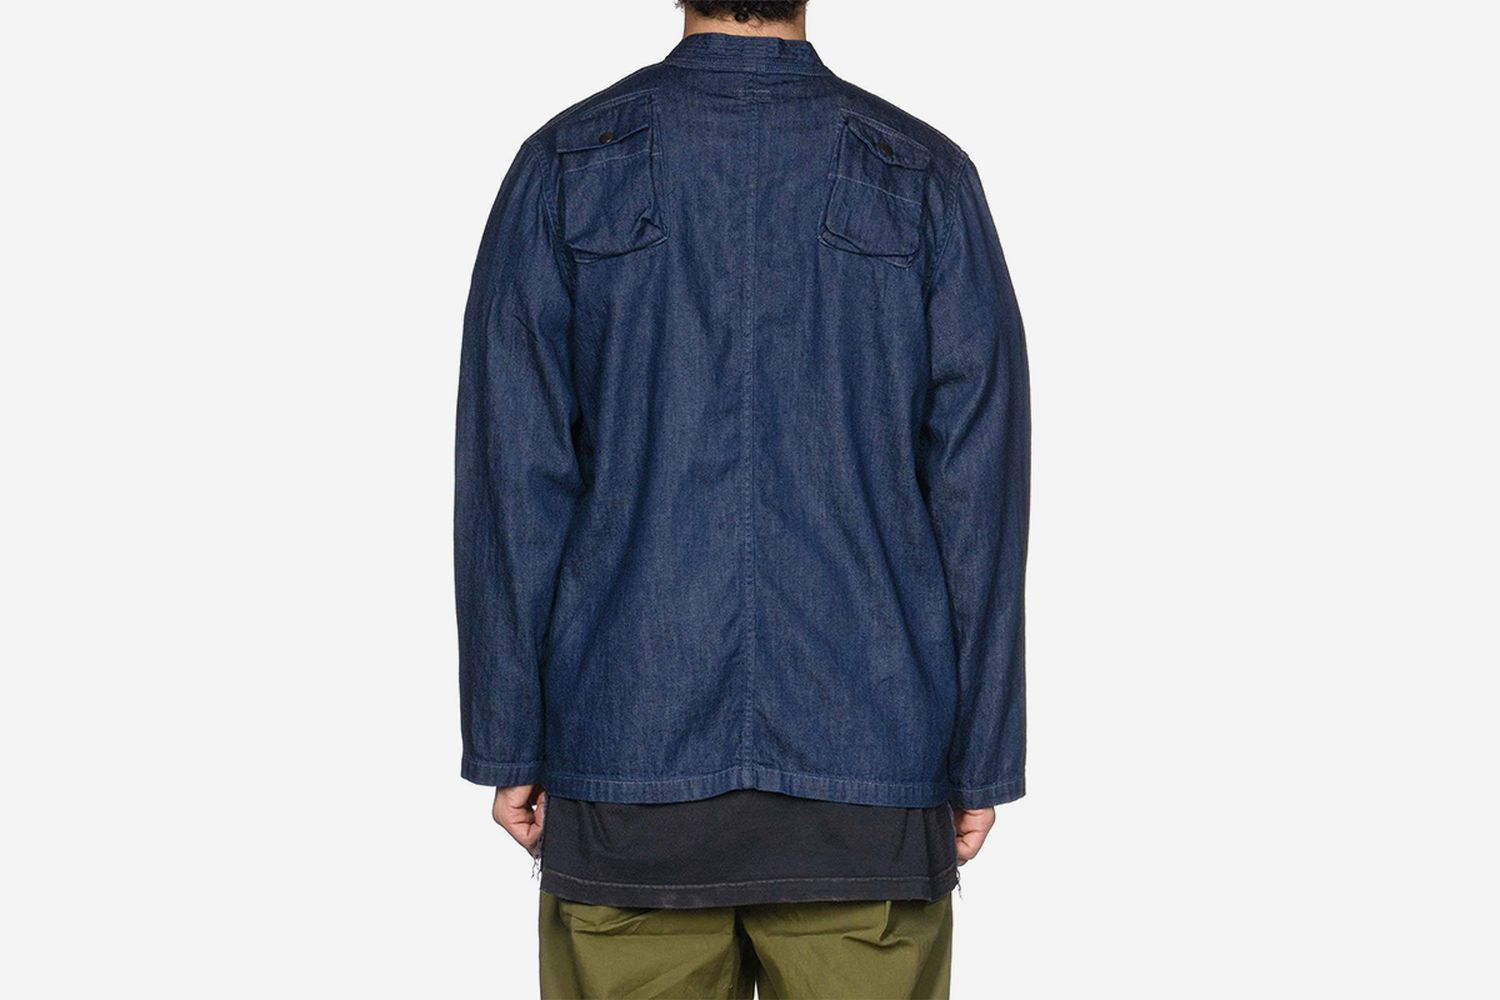 8oz Denim Fishing Kimono Shirt One Wash